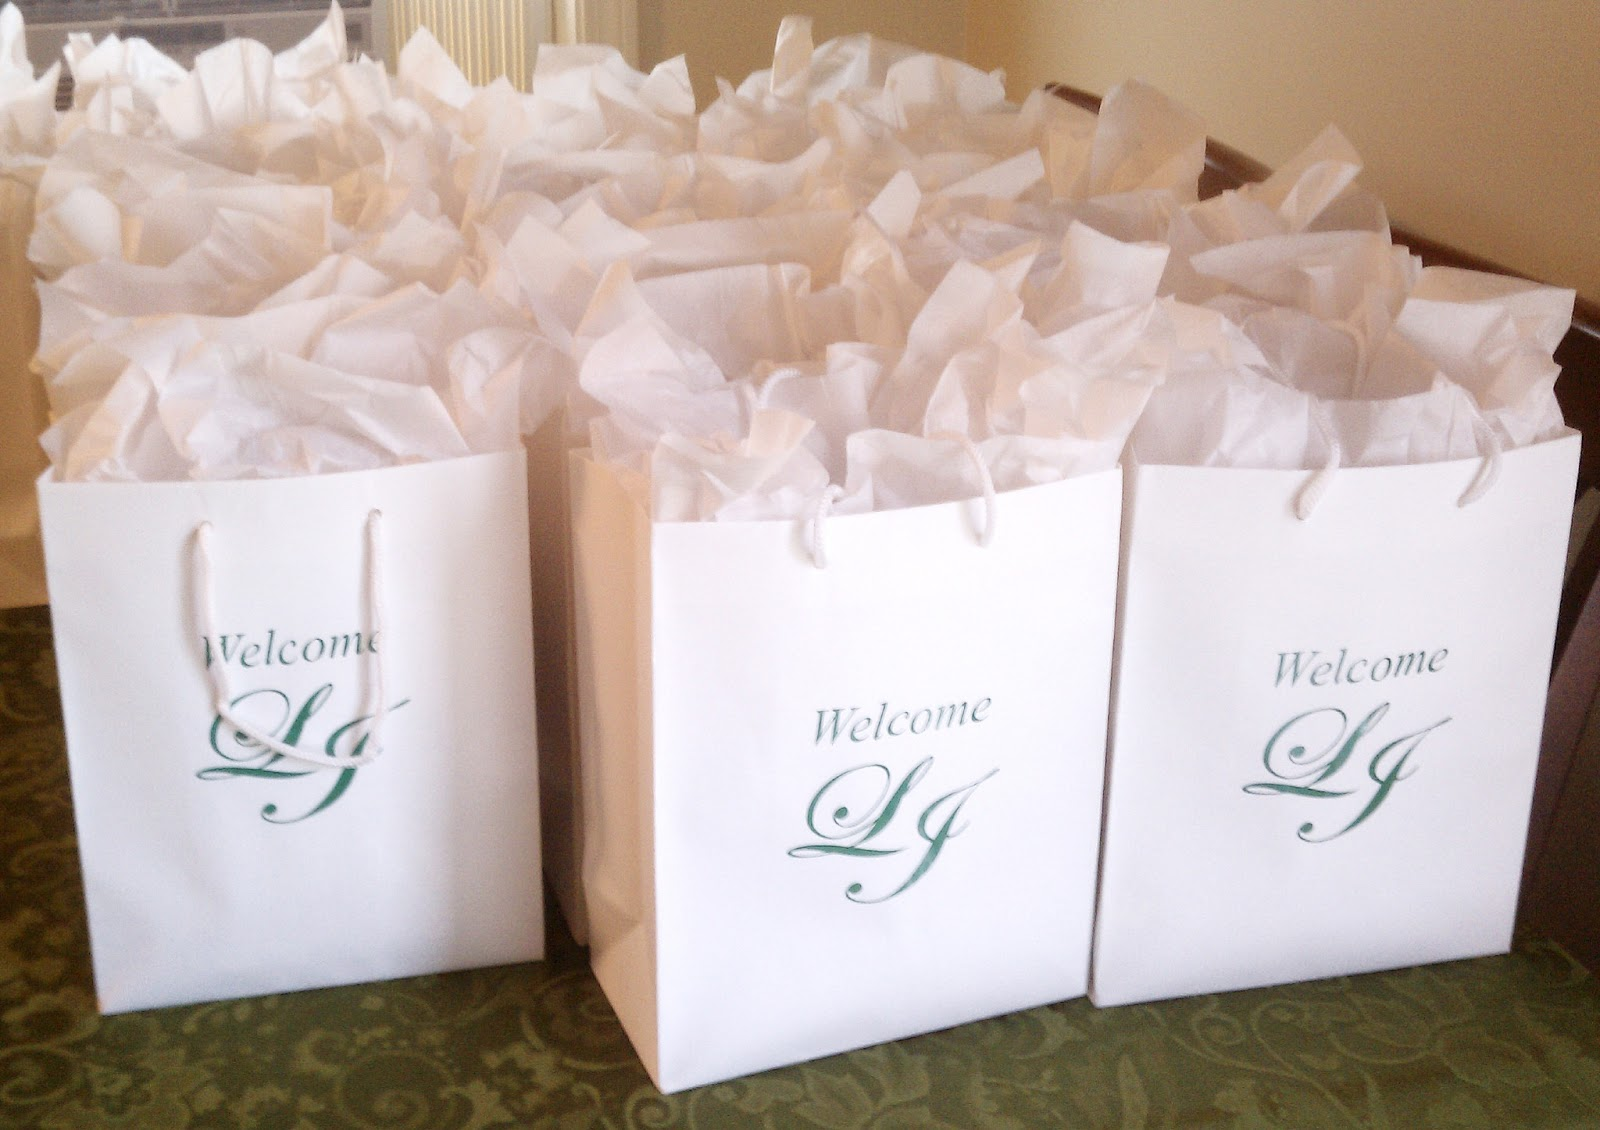 Wedding Gift Bag Ideas Suggestions : Eutopia Events: Wedding Day Welcome Bags